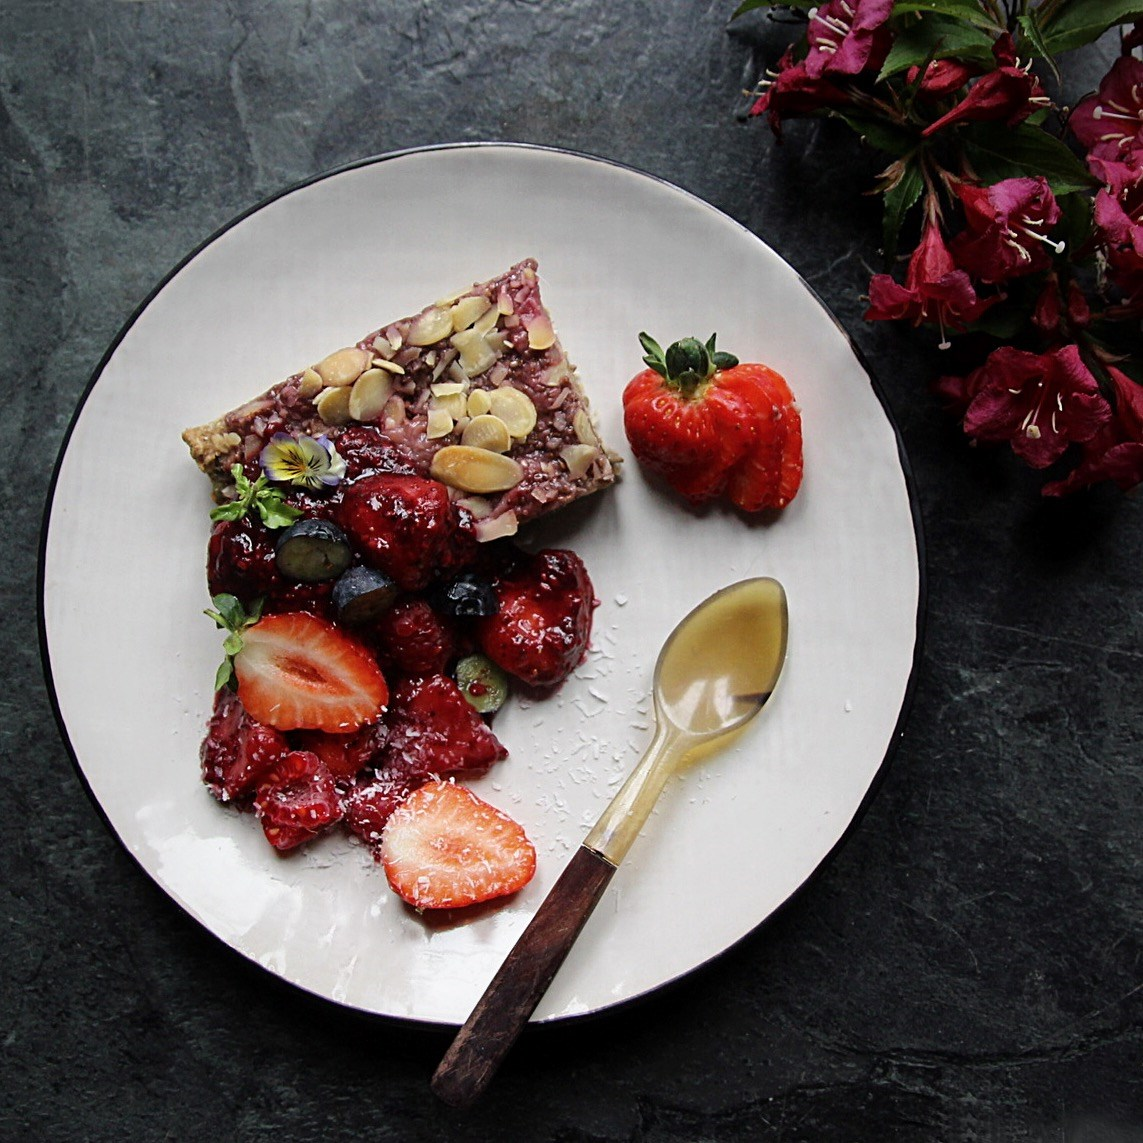 Rebel Recipes' Superfood breakfast bars